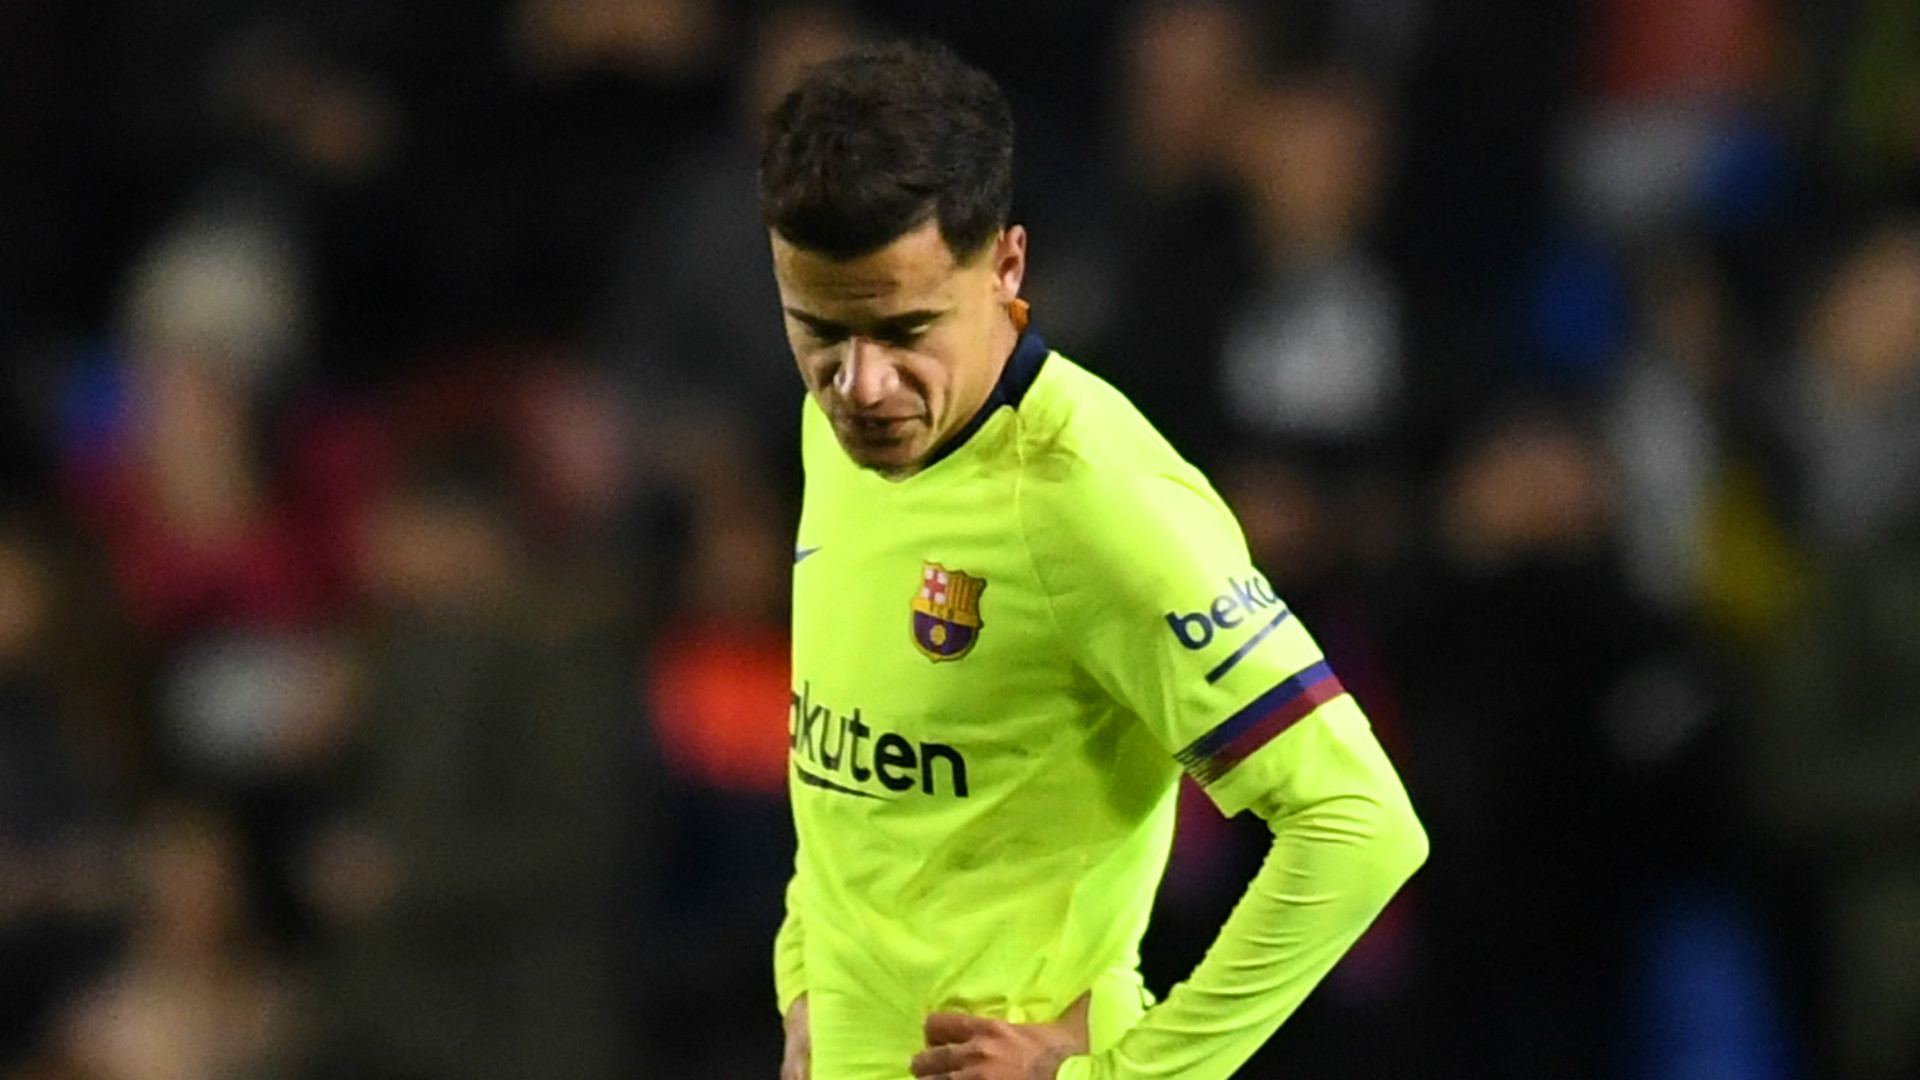 Barcelona could sell Philippe Coutinho in order to bring Neymar back